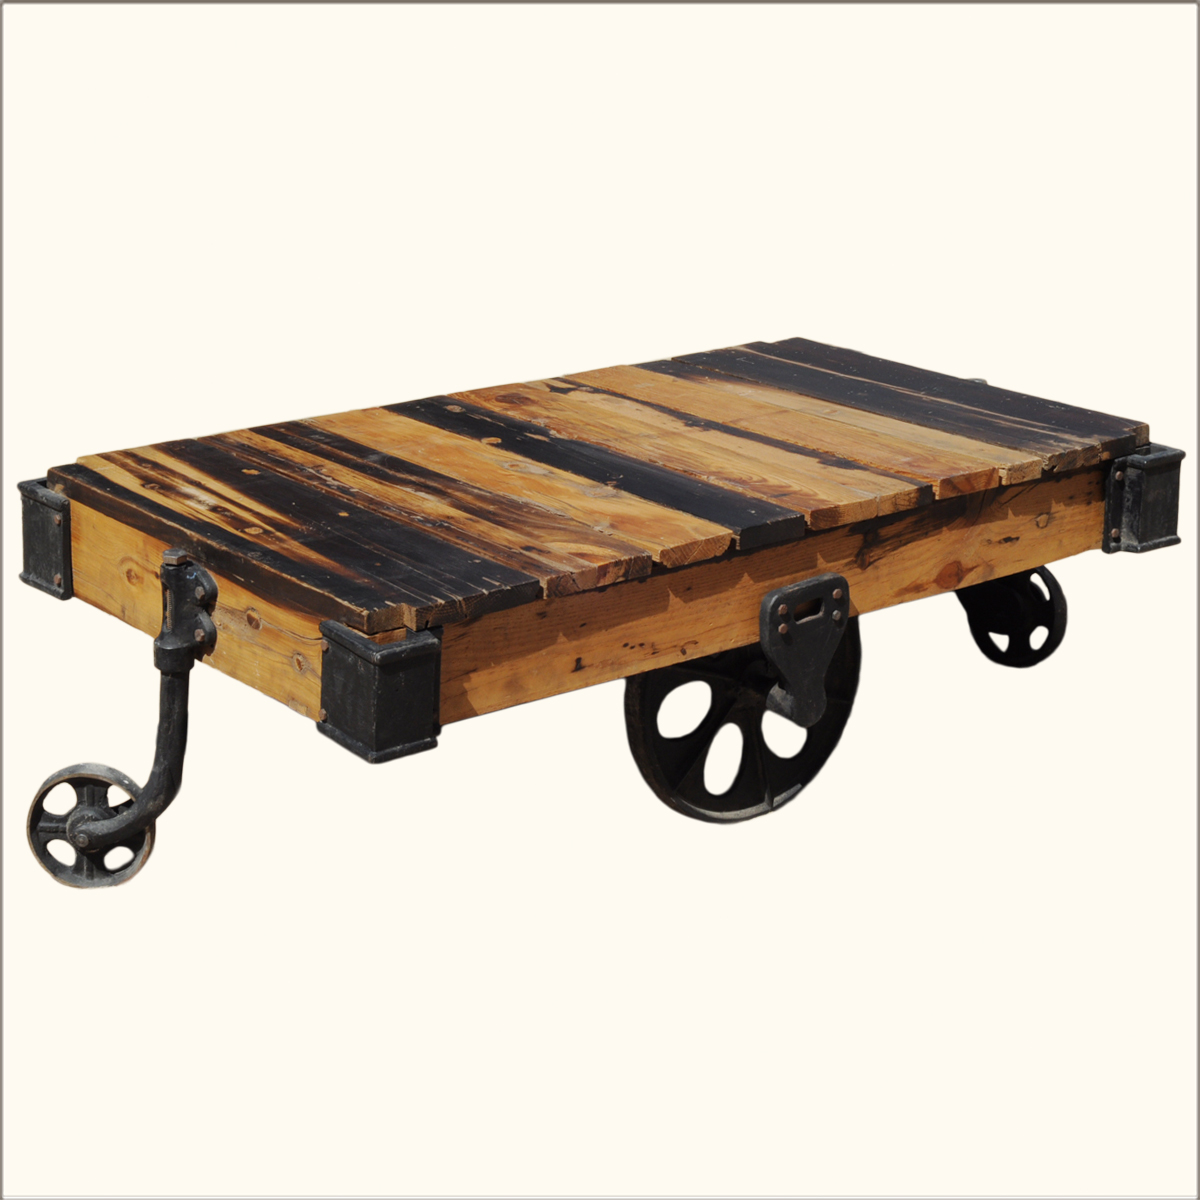 Vintage Rustic Reclaimed Wood Factory Cart Coffee Table On Wheel